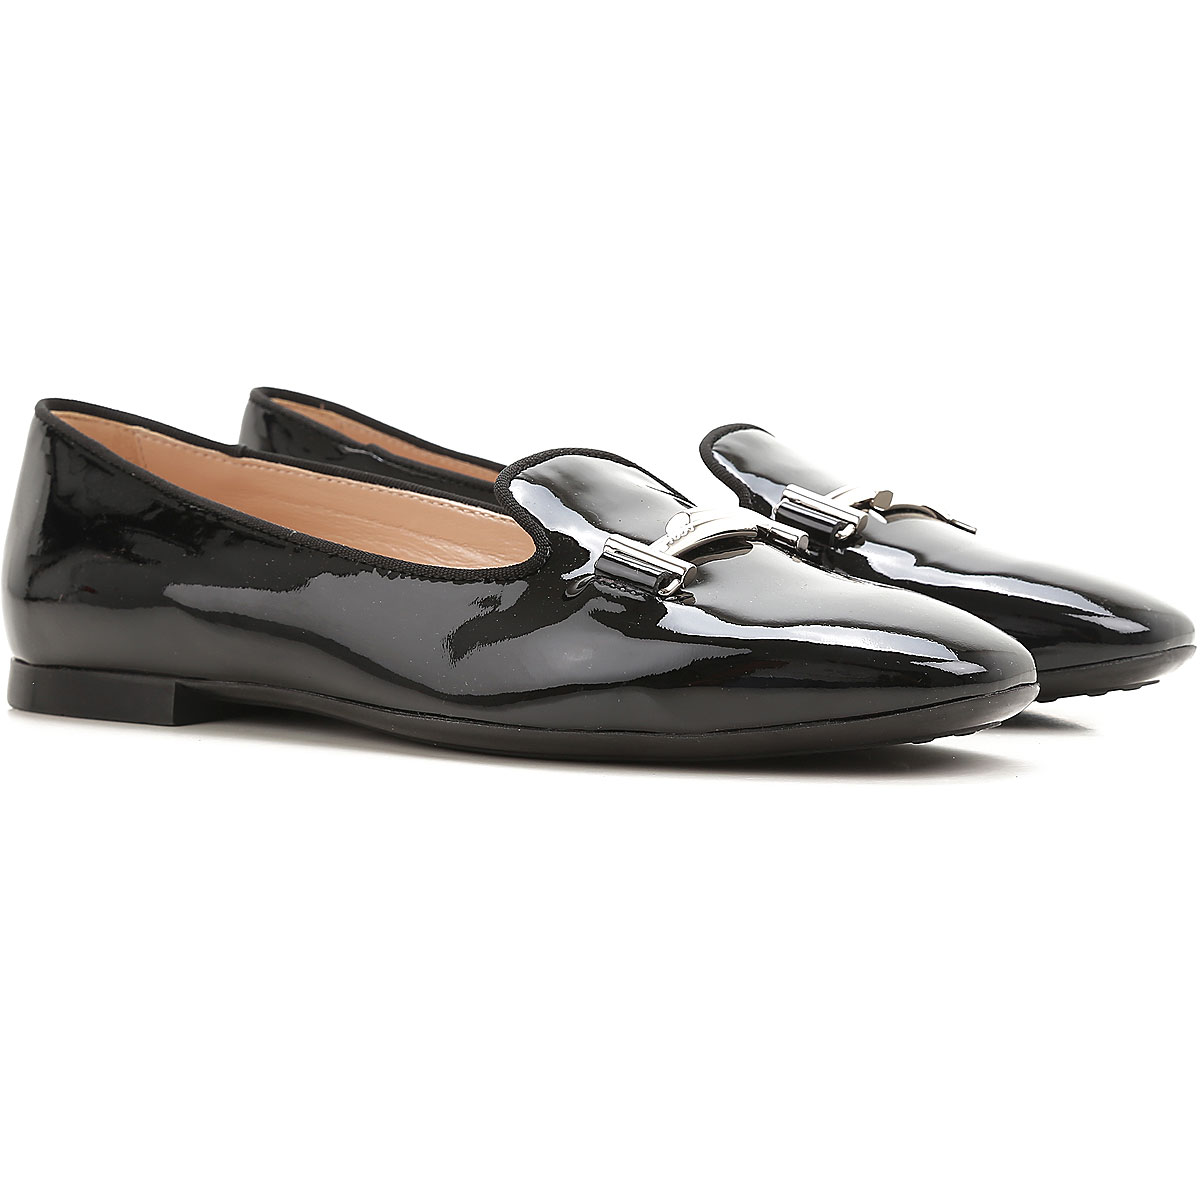 Image of Tods Ballet Flats Ballerina Shoes for Women, Black, Patent, 2017, 10 6 6.5 7 9